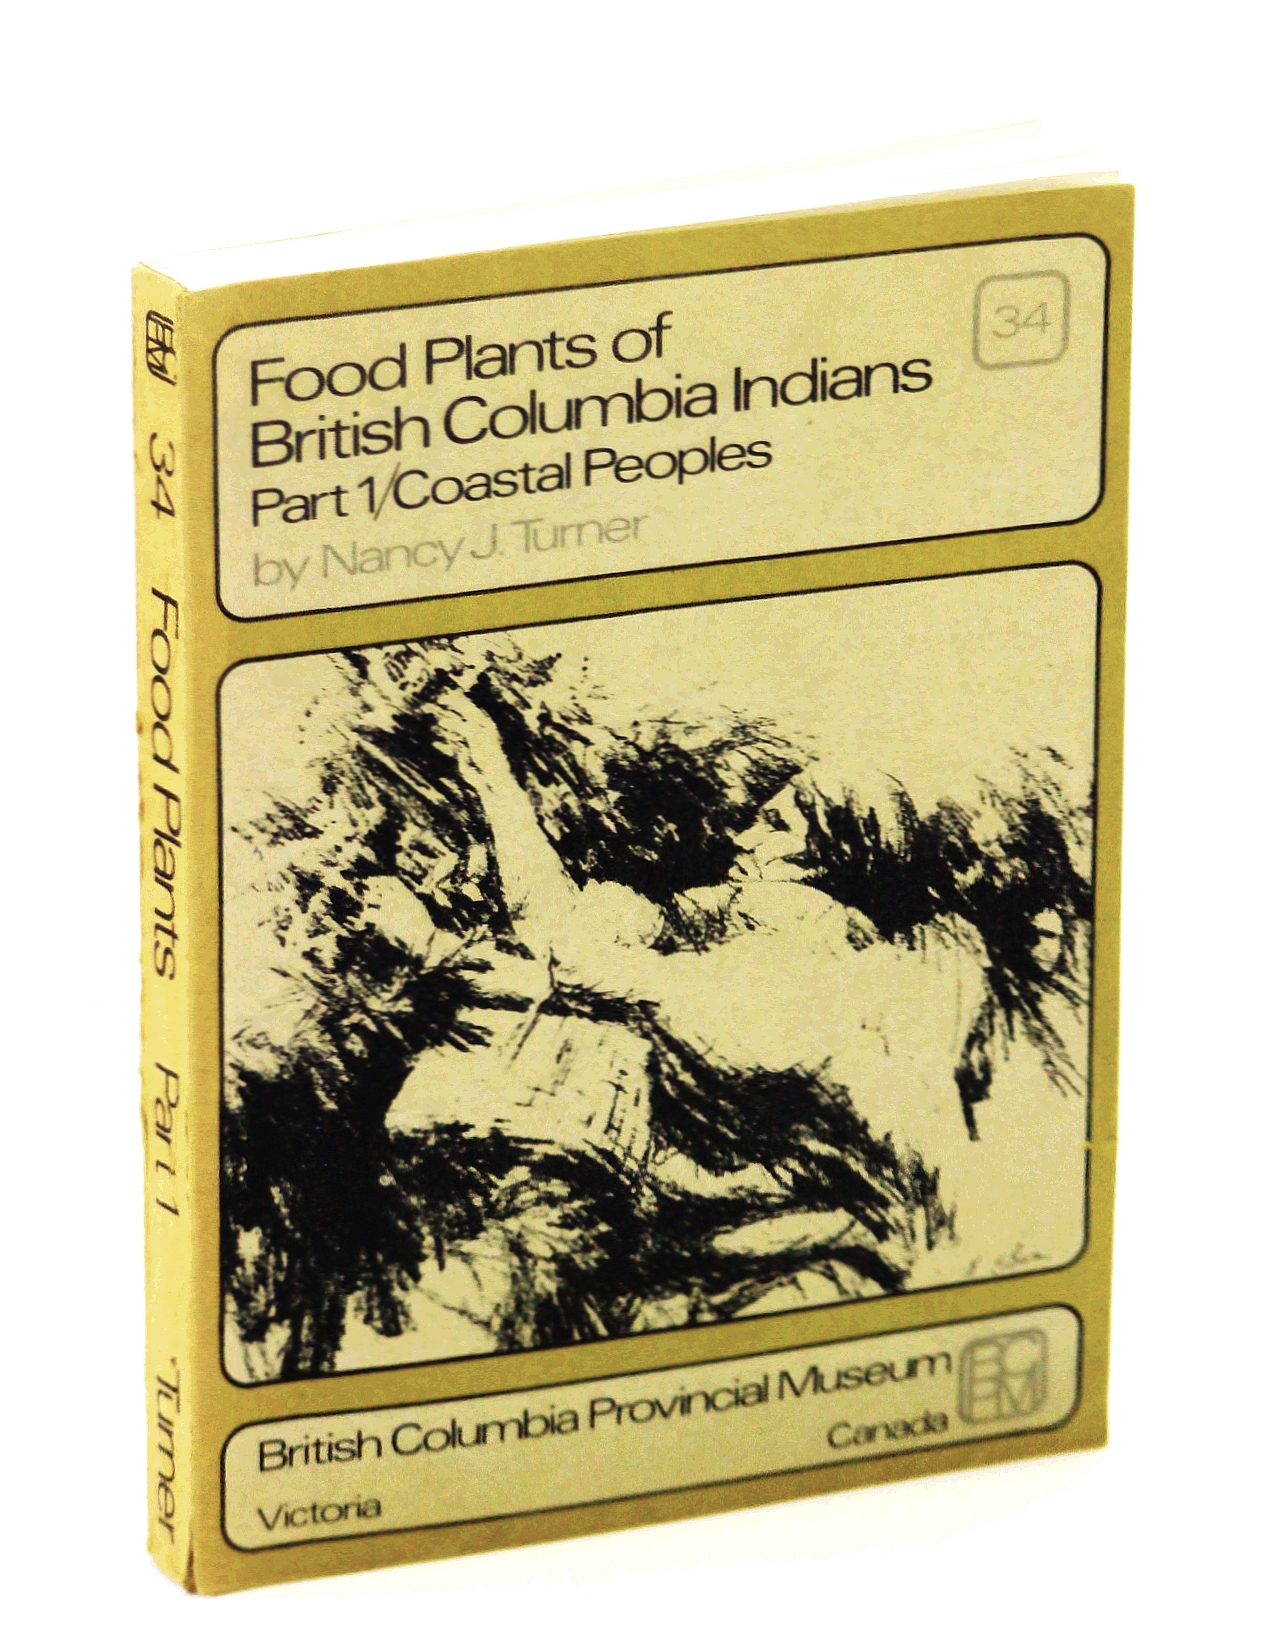 Image for Food Plants of British Columbia Indians - Part 1/Coastal Peoples